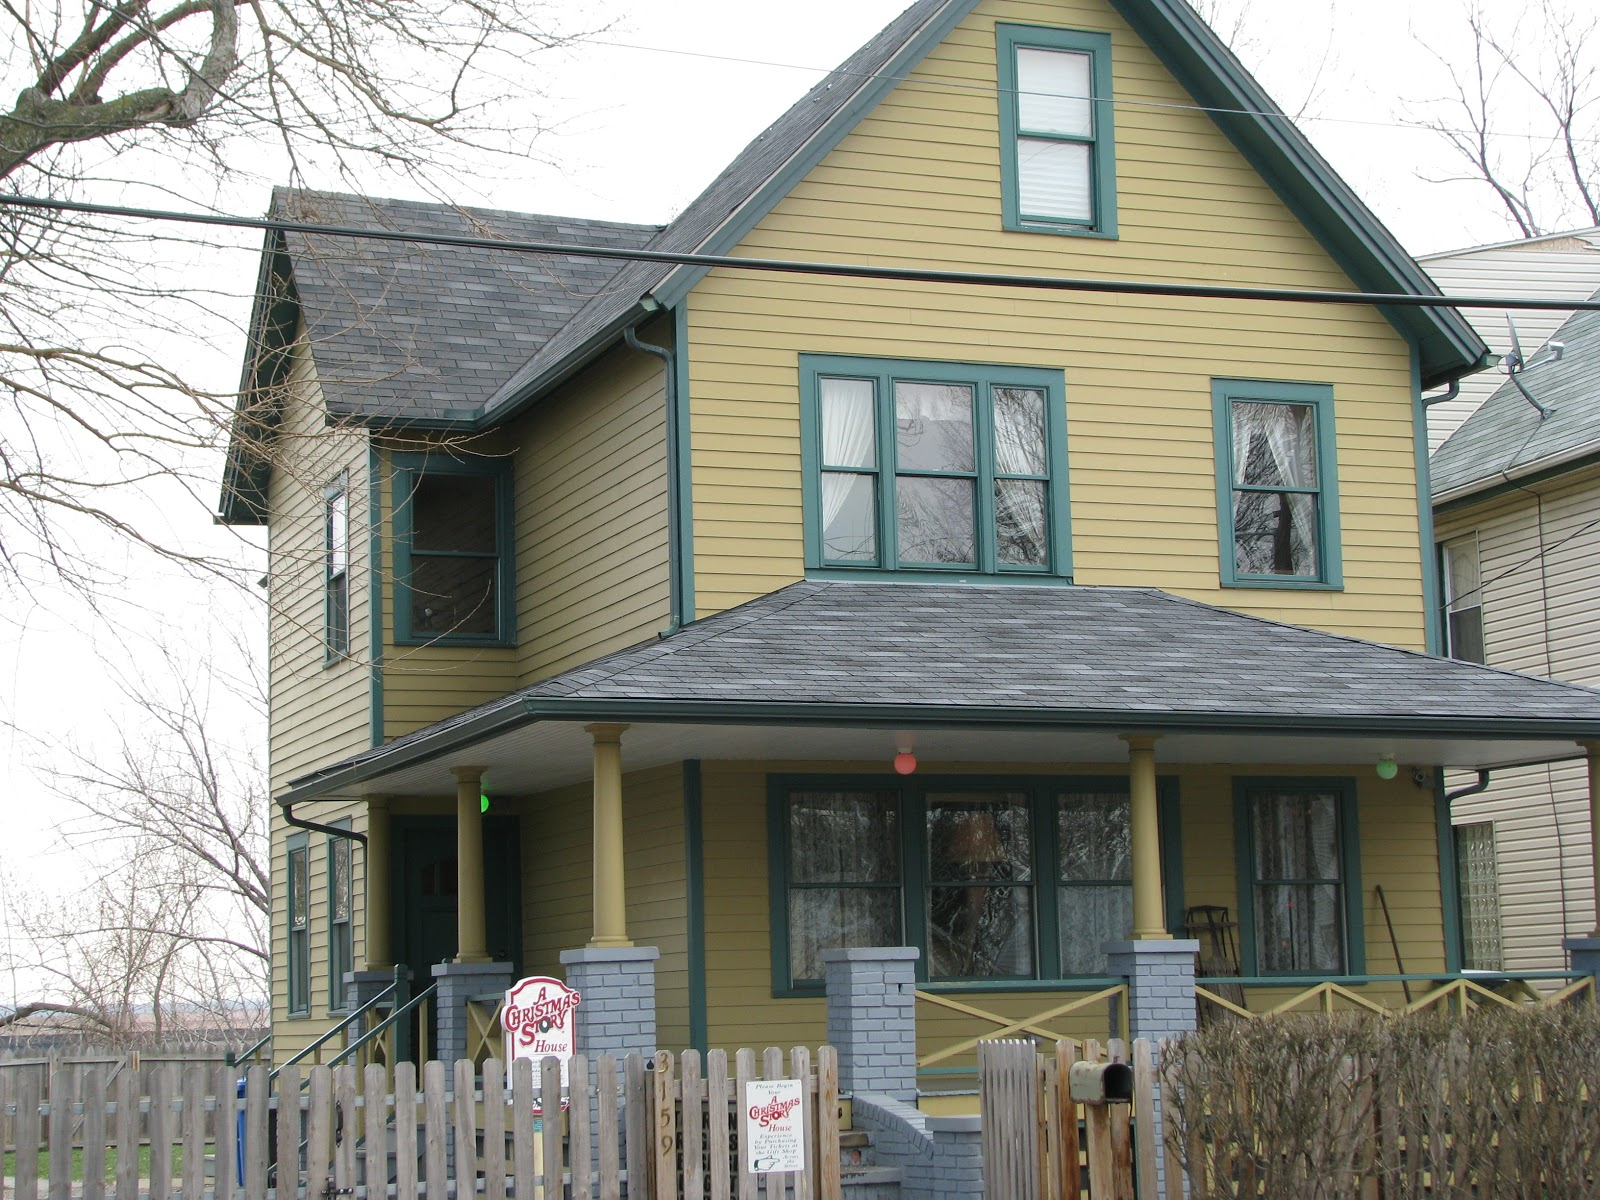 a christmas story house in cleveland - Where Was The Christmas Story Filmed